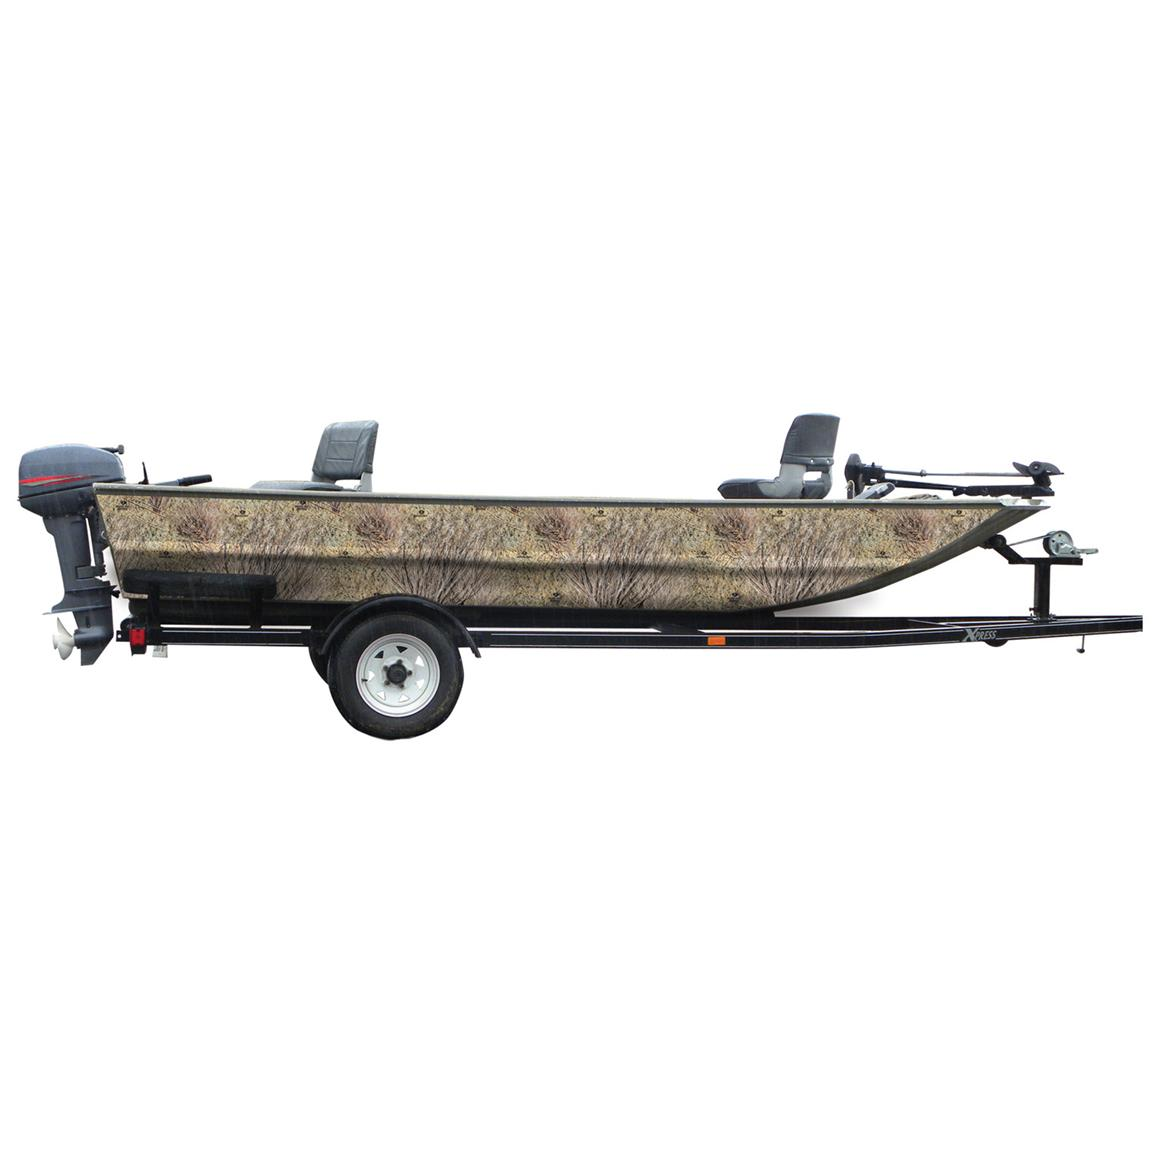 Mossy Oak Graphics® 16 foot Boat Side Camouflage Kit, MO Brush